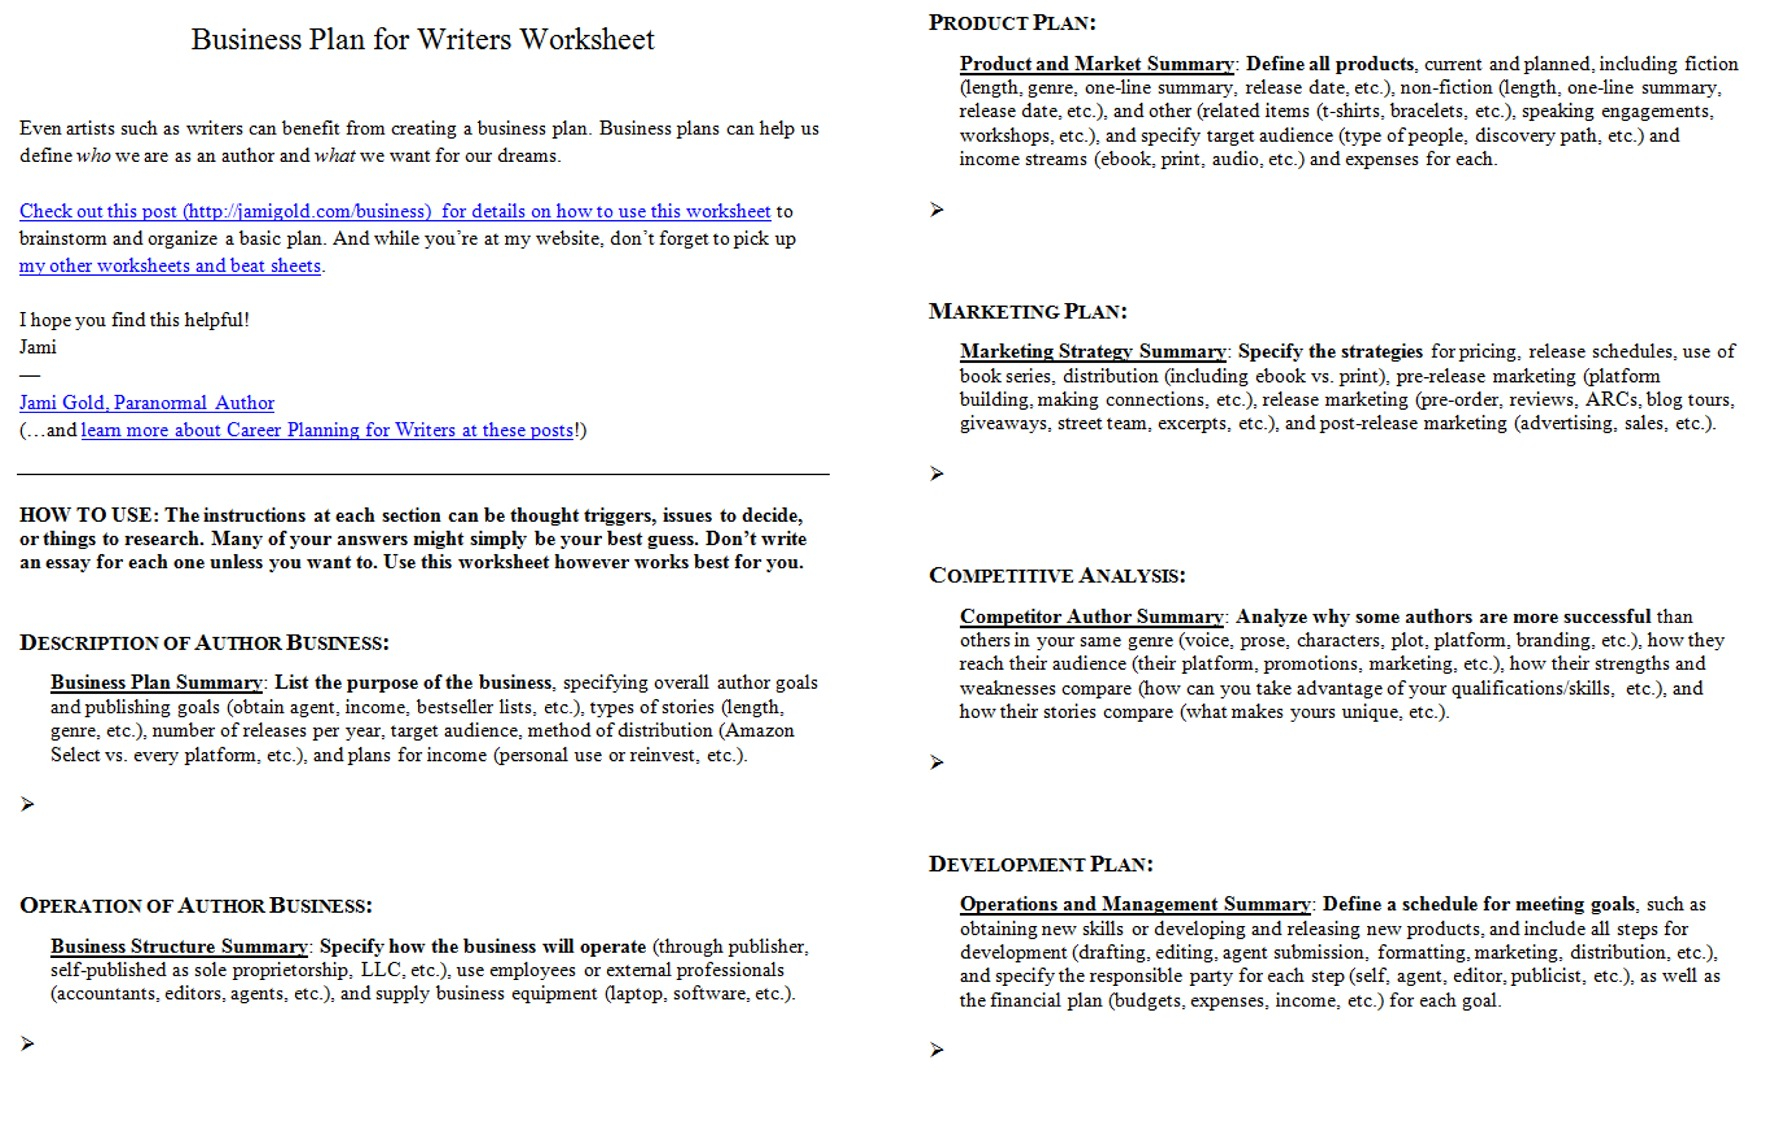 Weirdmailus  Sweet Worksheets For Writers  Jami Gold Paranormal Author With Glamorous Screen Shot Of Both Pages Of The Business Plan For Writers Worksheet With Astonishing Math Worksheet Word Problems Also Expository Worksheets In Addition Perimeter Worksheets Grade  And Homonym Worksheets Rd Grade As Well As Printable Grade  Math Worksheets Additionally Classical Music Worksheets From Jamigoldcom With Weirdmailus  Glamorous Worksheets For Writers  Jami Gold Paranormal Author With Astonishing Screen Shot Of Both Pages Of The Business Plan For Writers Worksheet And Sweet Math Worksheet Word Problems Also Expository Worksheets In Addition Perimeter Worksheets Grade  From Jamigoldcom